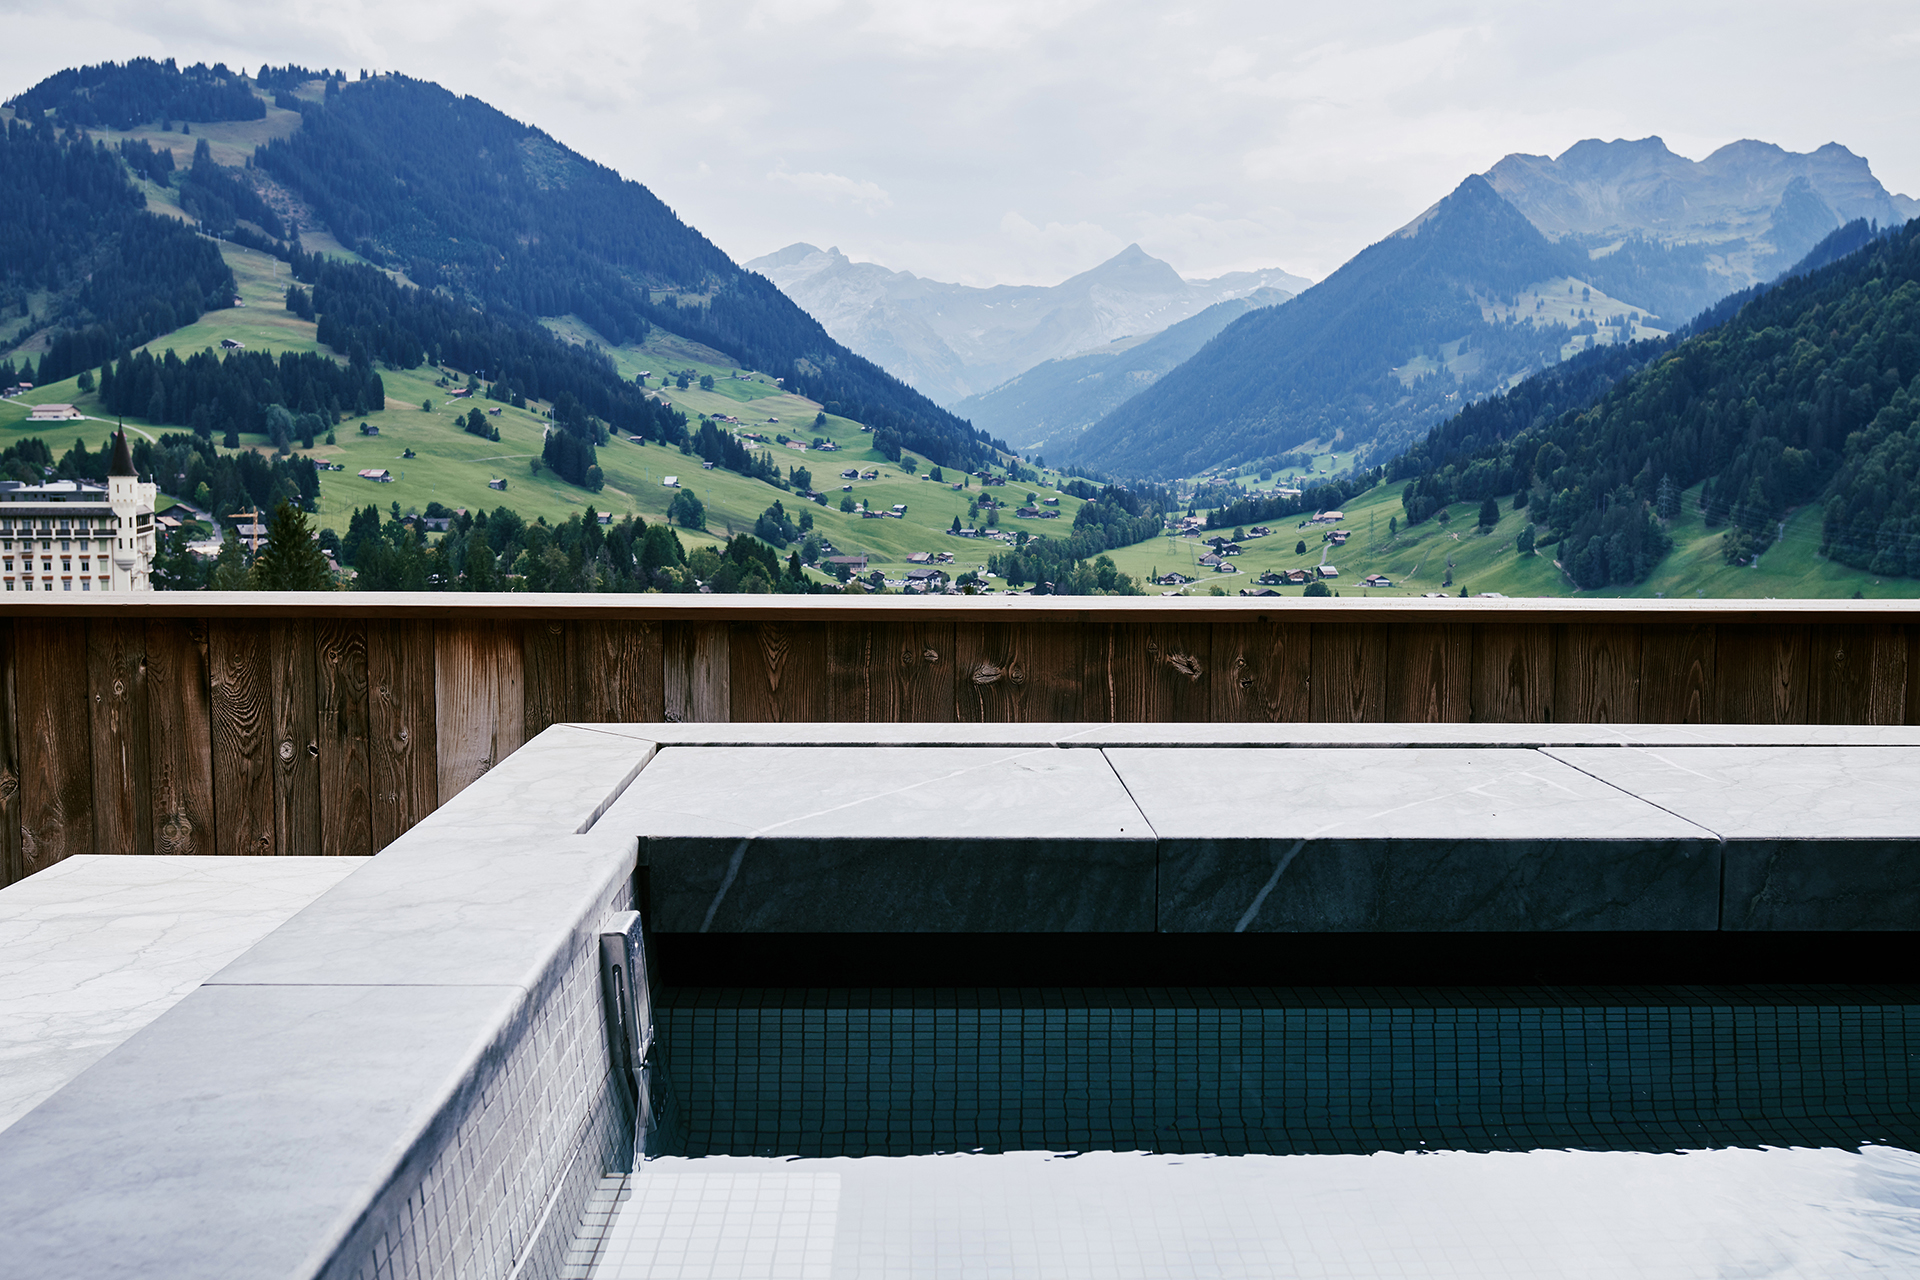 TheAlpinaGstaad_Rooms&Suites_0028_1920.jpg